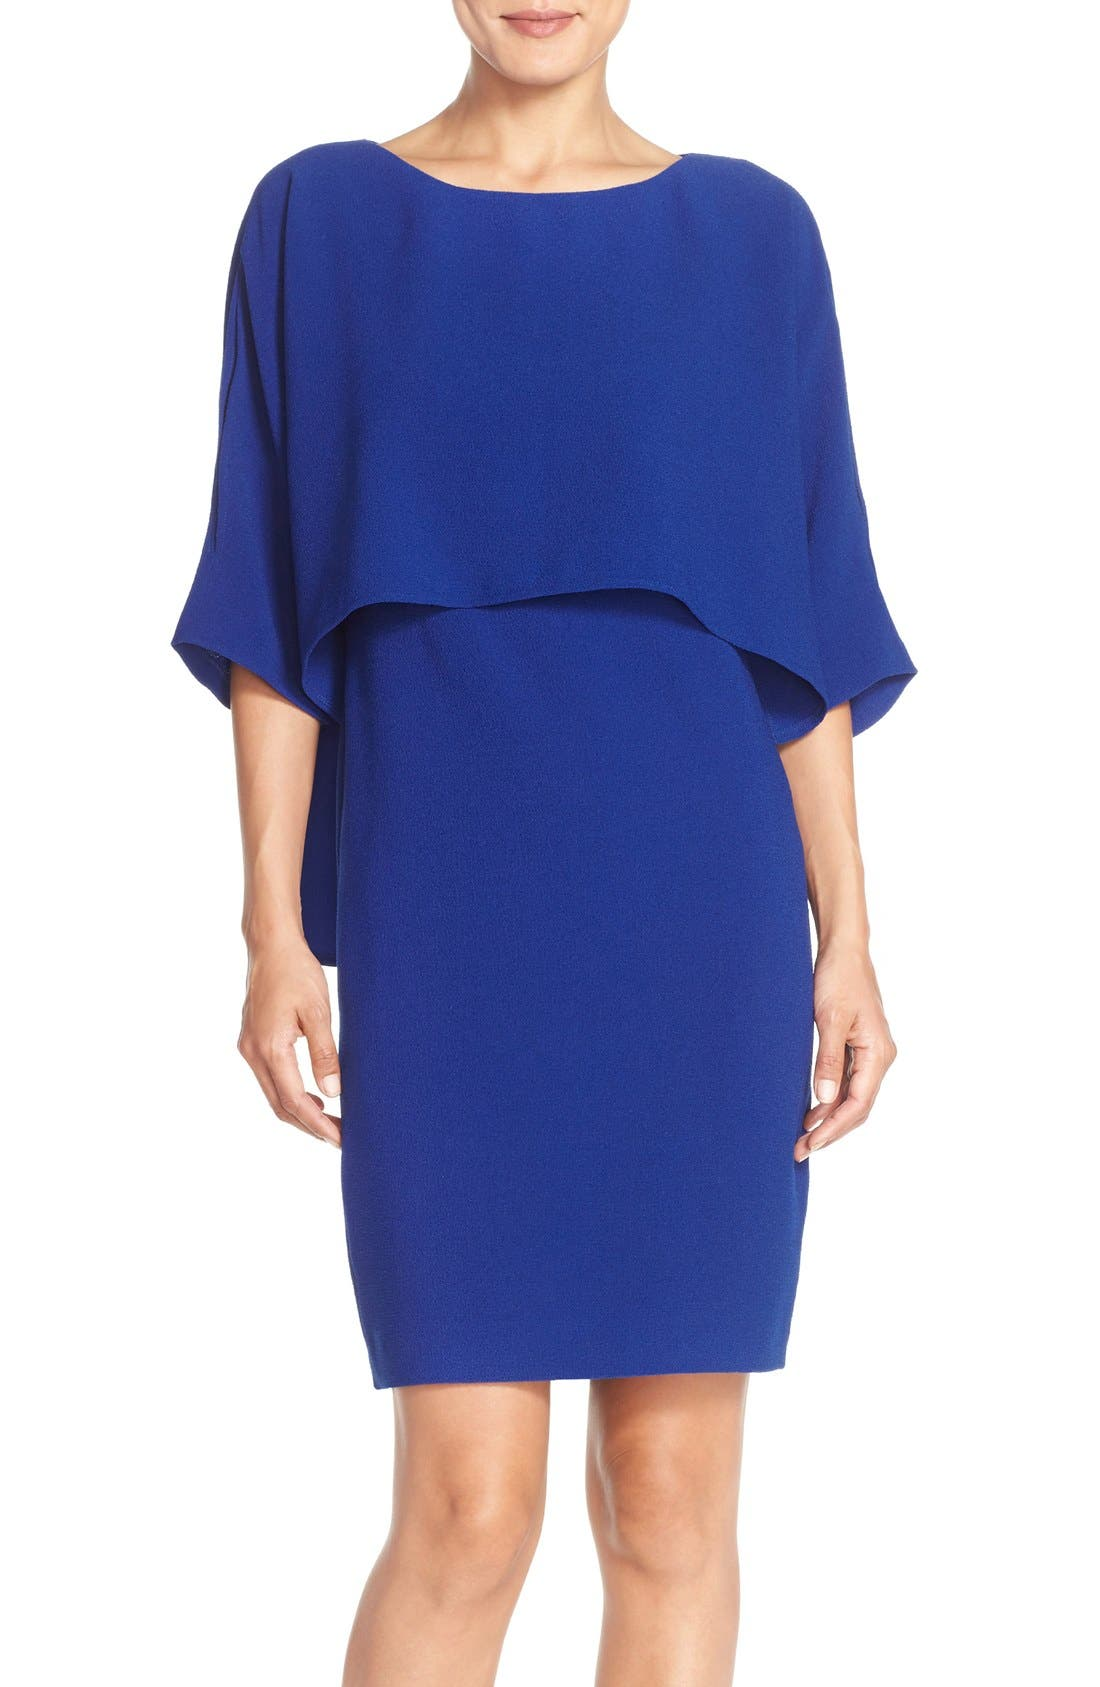 Alternate Image 1 Selected - Adrianna Papell Draped Blouson Sheath Dress